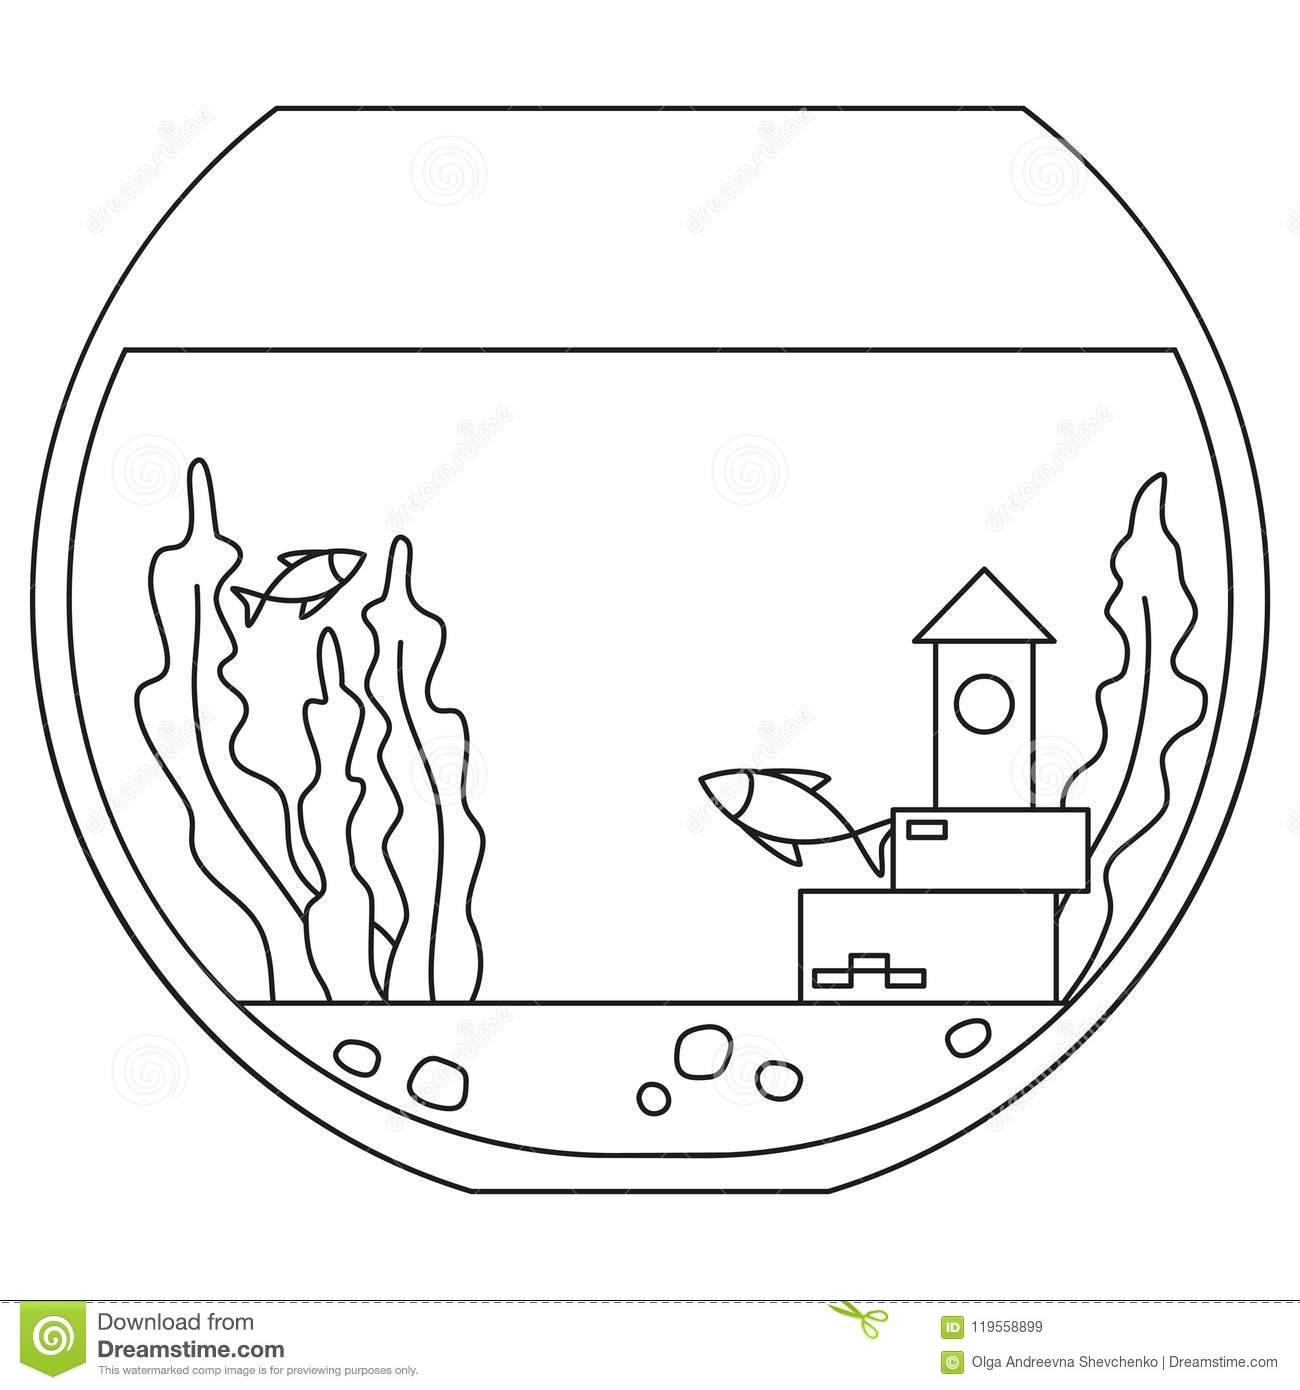 Coloring Template With Fish Stock Illustration